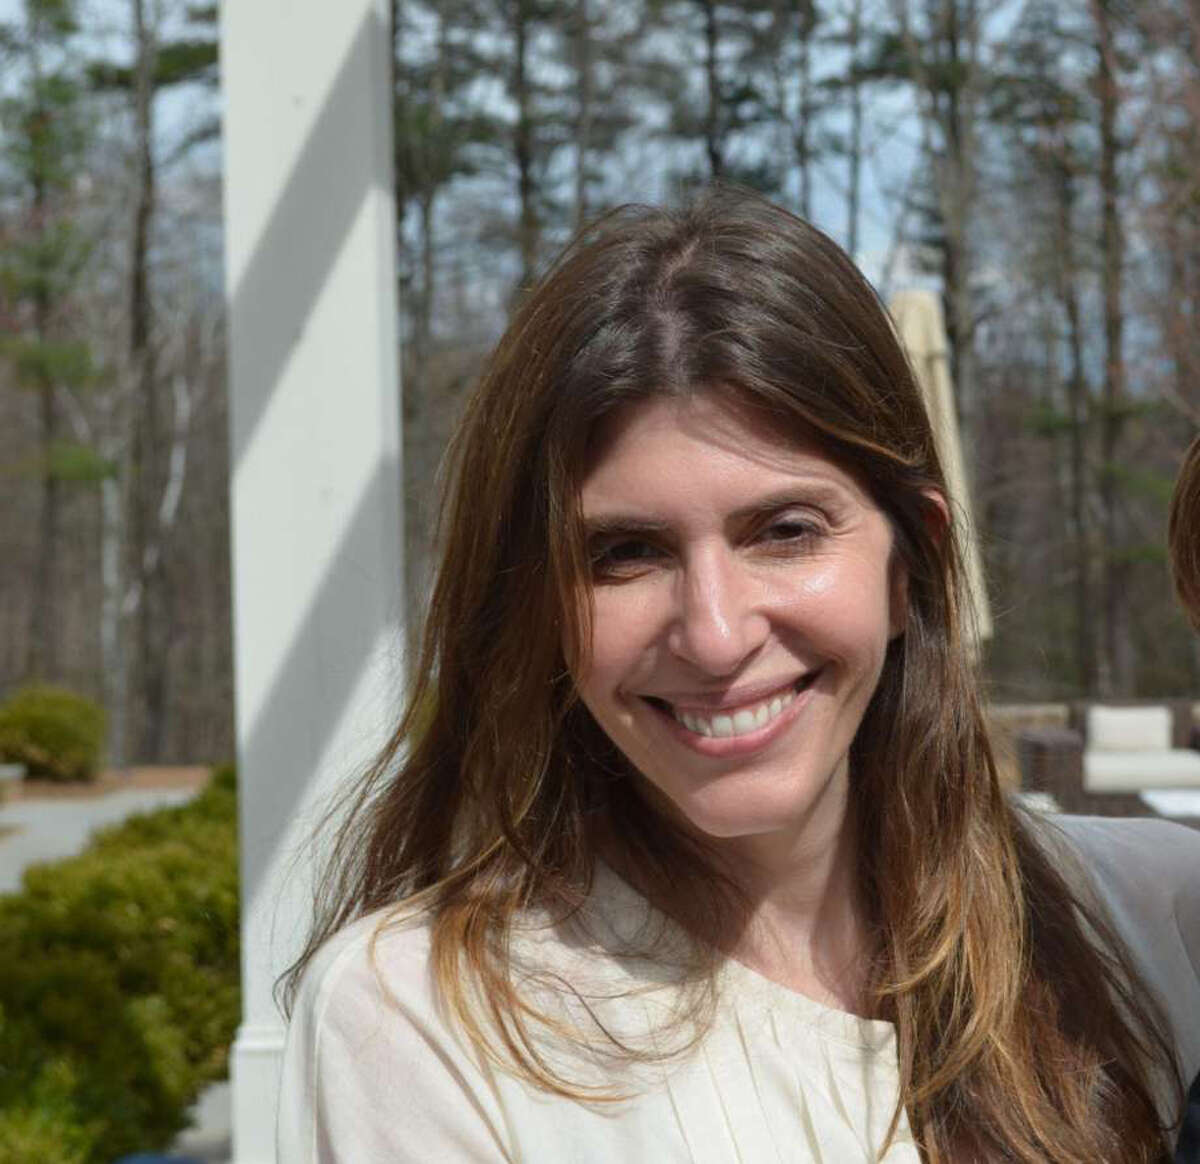 An added layer of security has been placed in missing New Canaan woman Jennifer Dulos' neighborhood as the search for the 50-year-old mother of five reached two weeks. (Handout/Hartford Courant/TNS). Photo: Handout / TNS